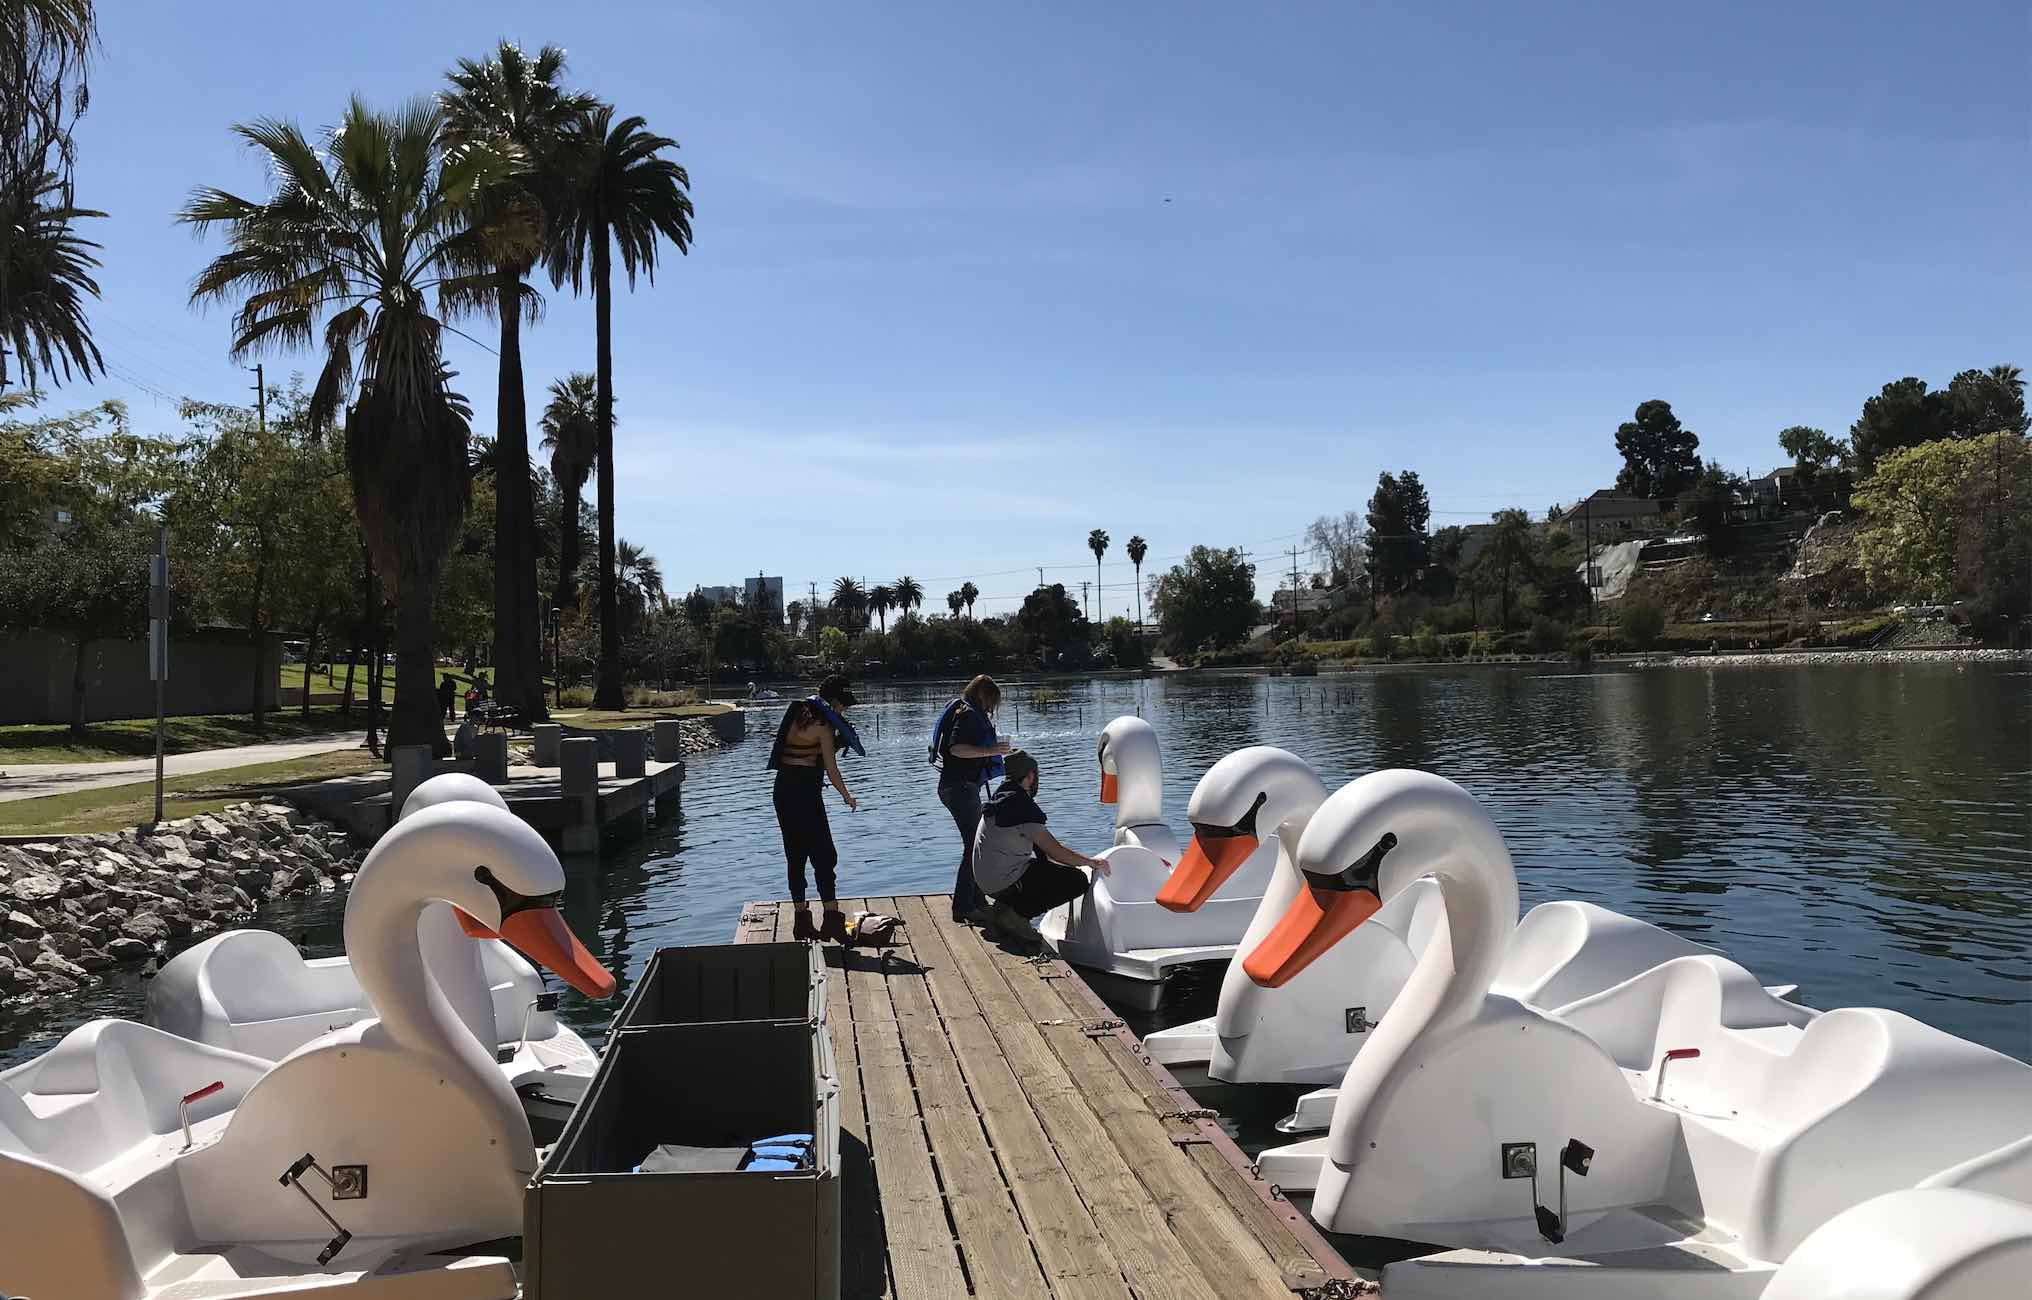 You Can Now Ride Swan Boats At Echo Park Lake